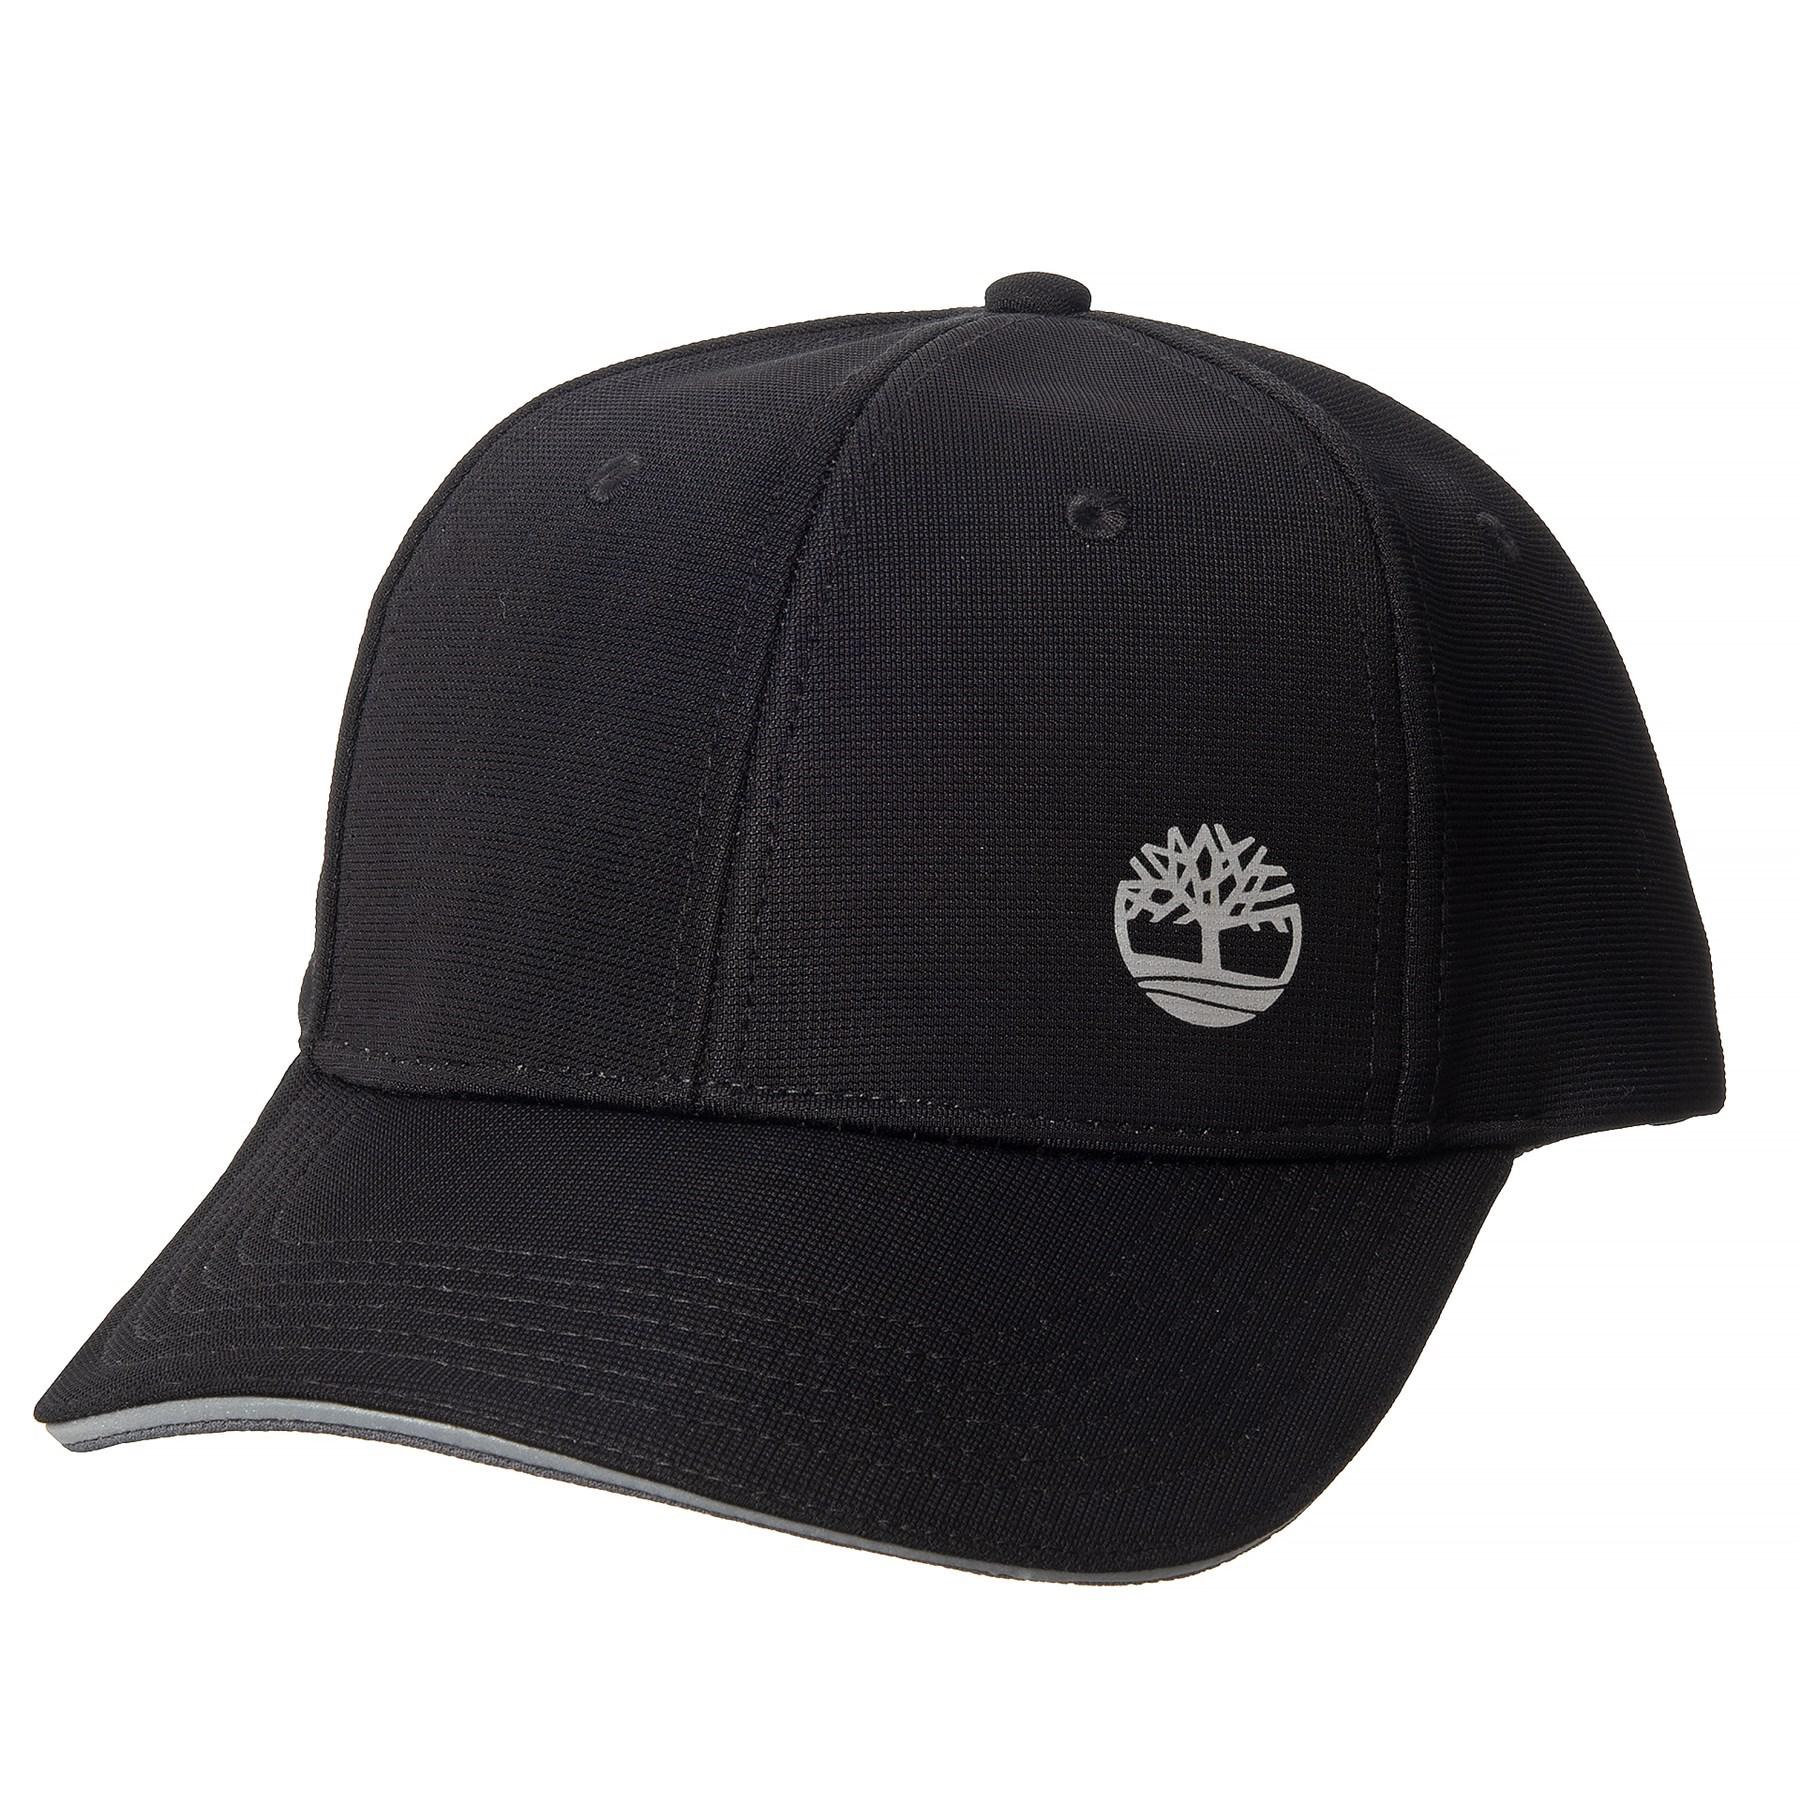 Lyst - Timberland Ottoma Stretch Baseball Cap With Reflective Logo ... d21ea4a73c2a